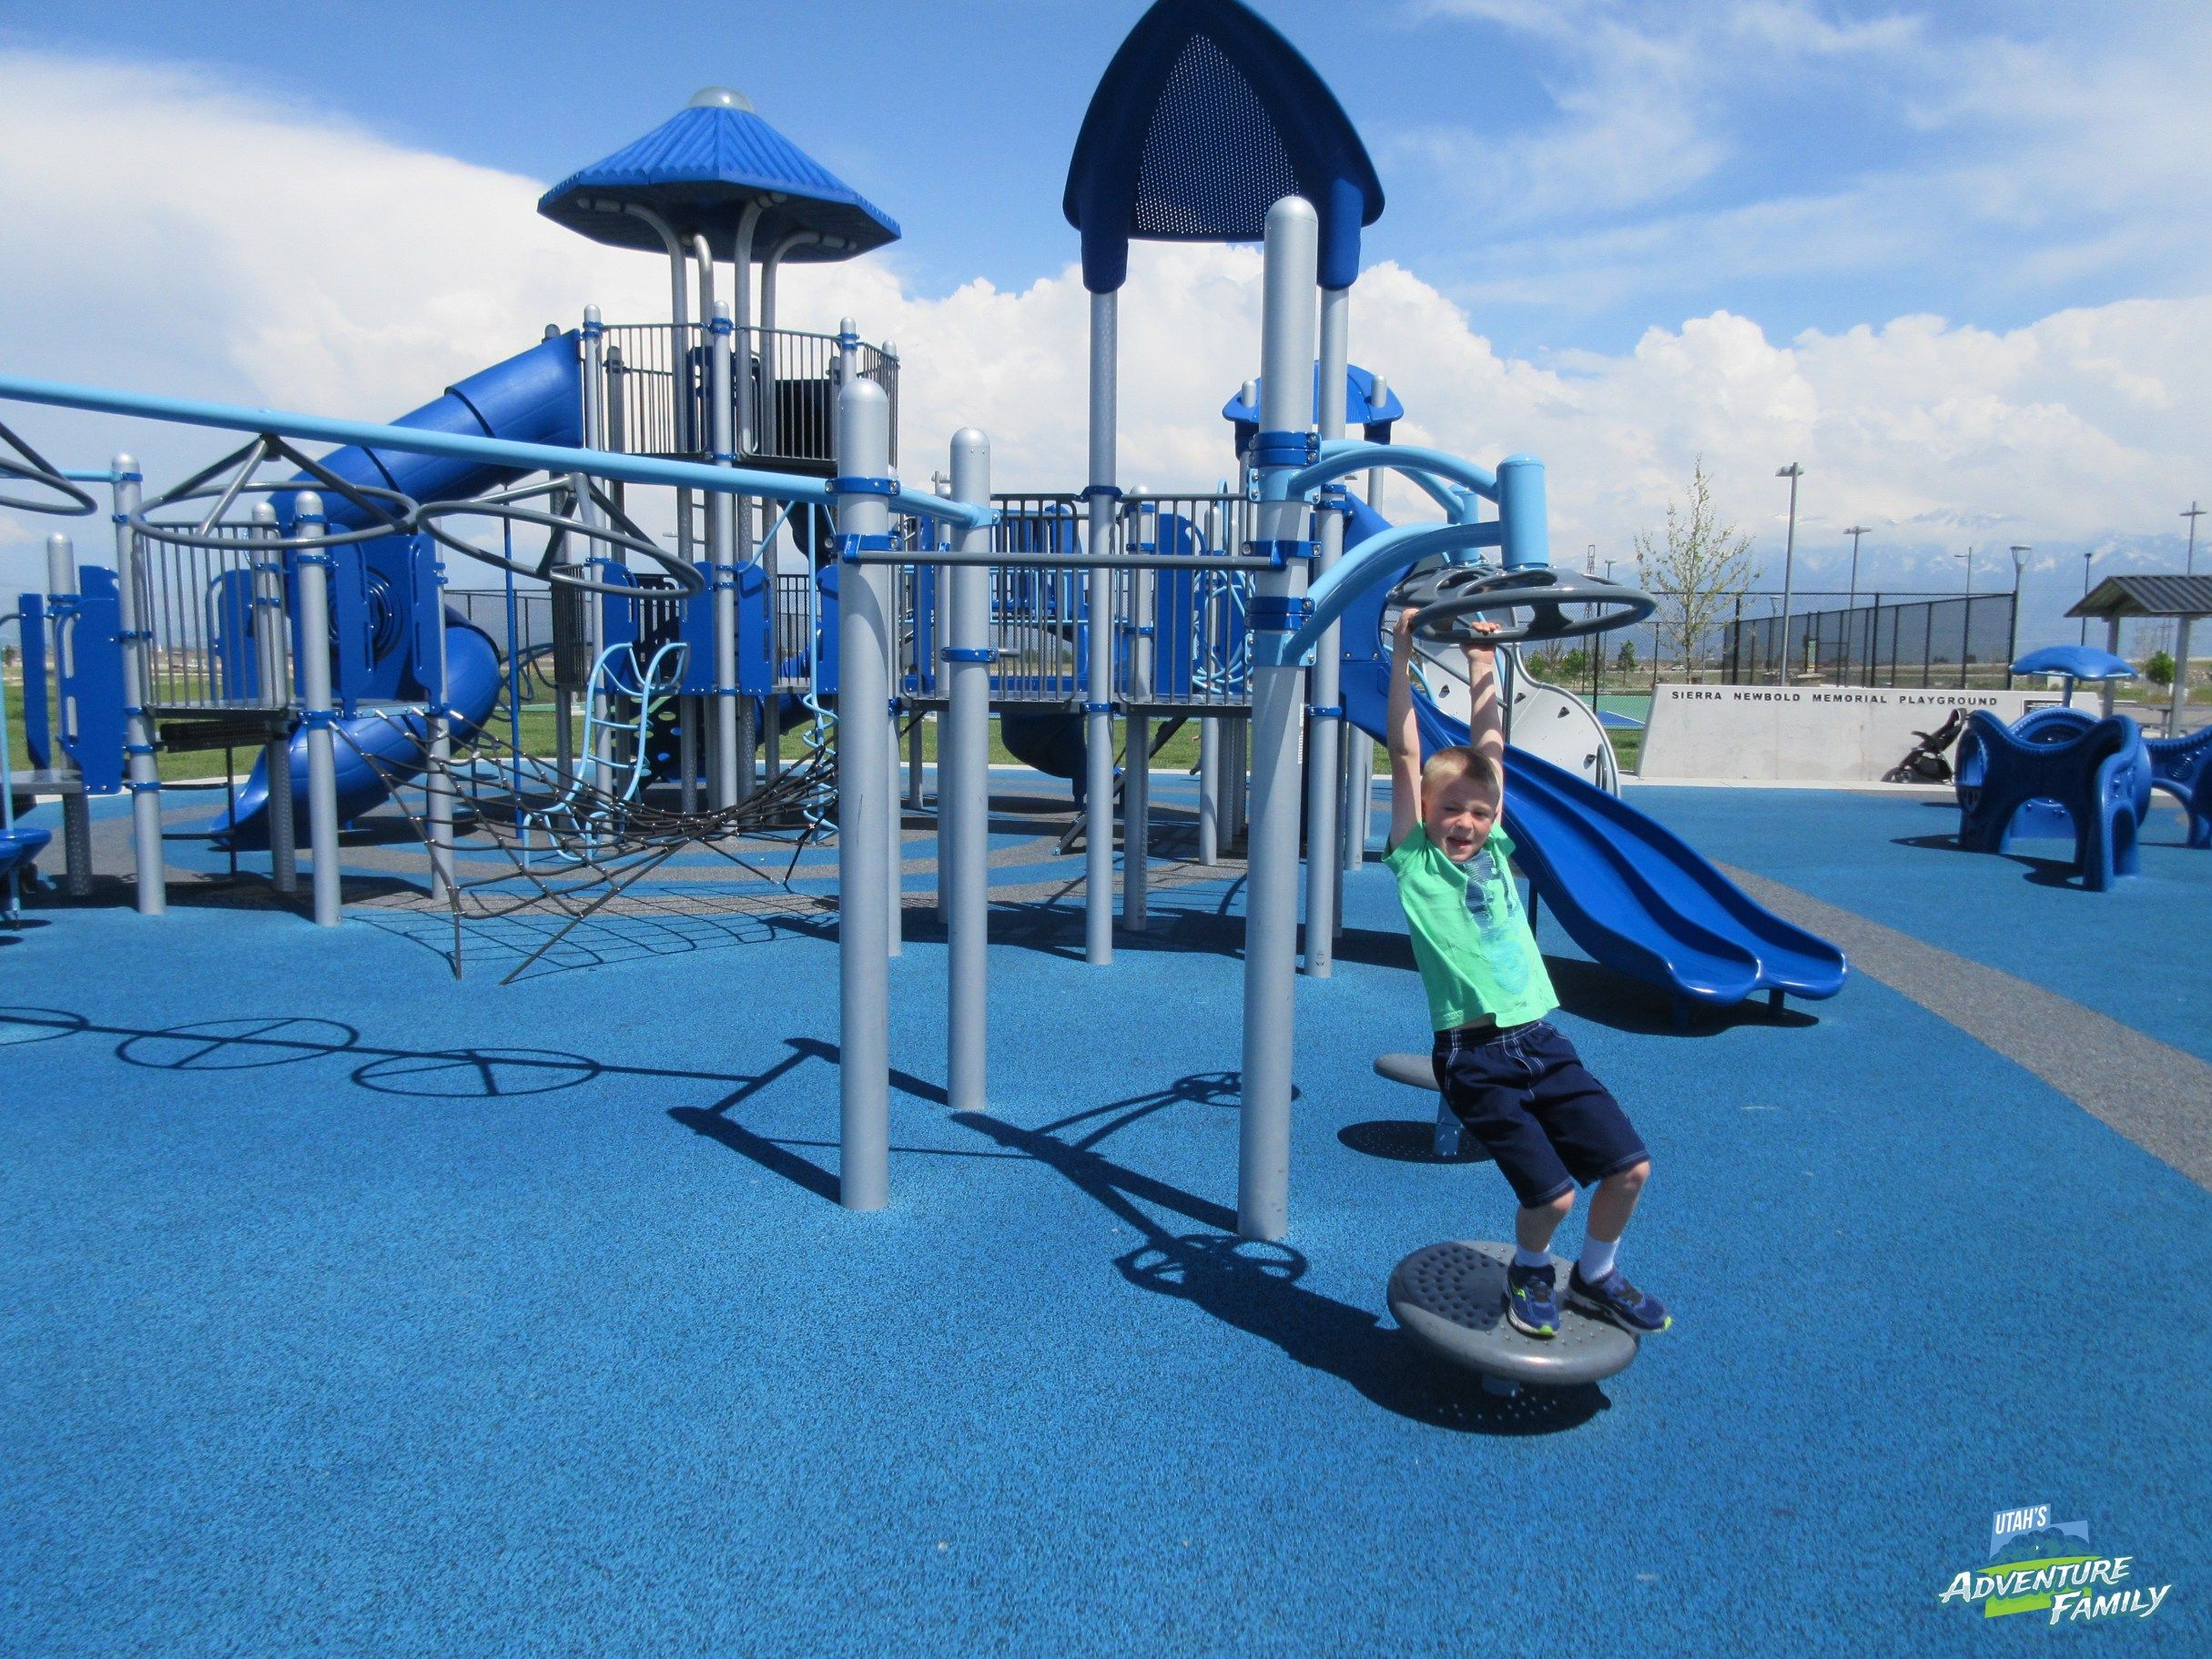 The Sierra Newbold Playground is out west, but it is worth the drive. This playground has lots of fun toys for all ages, and is all accessible.